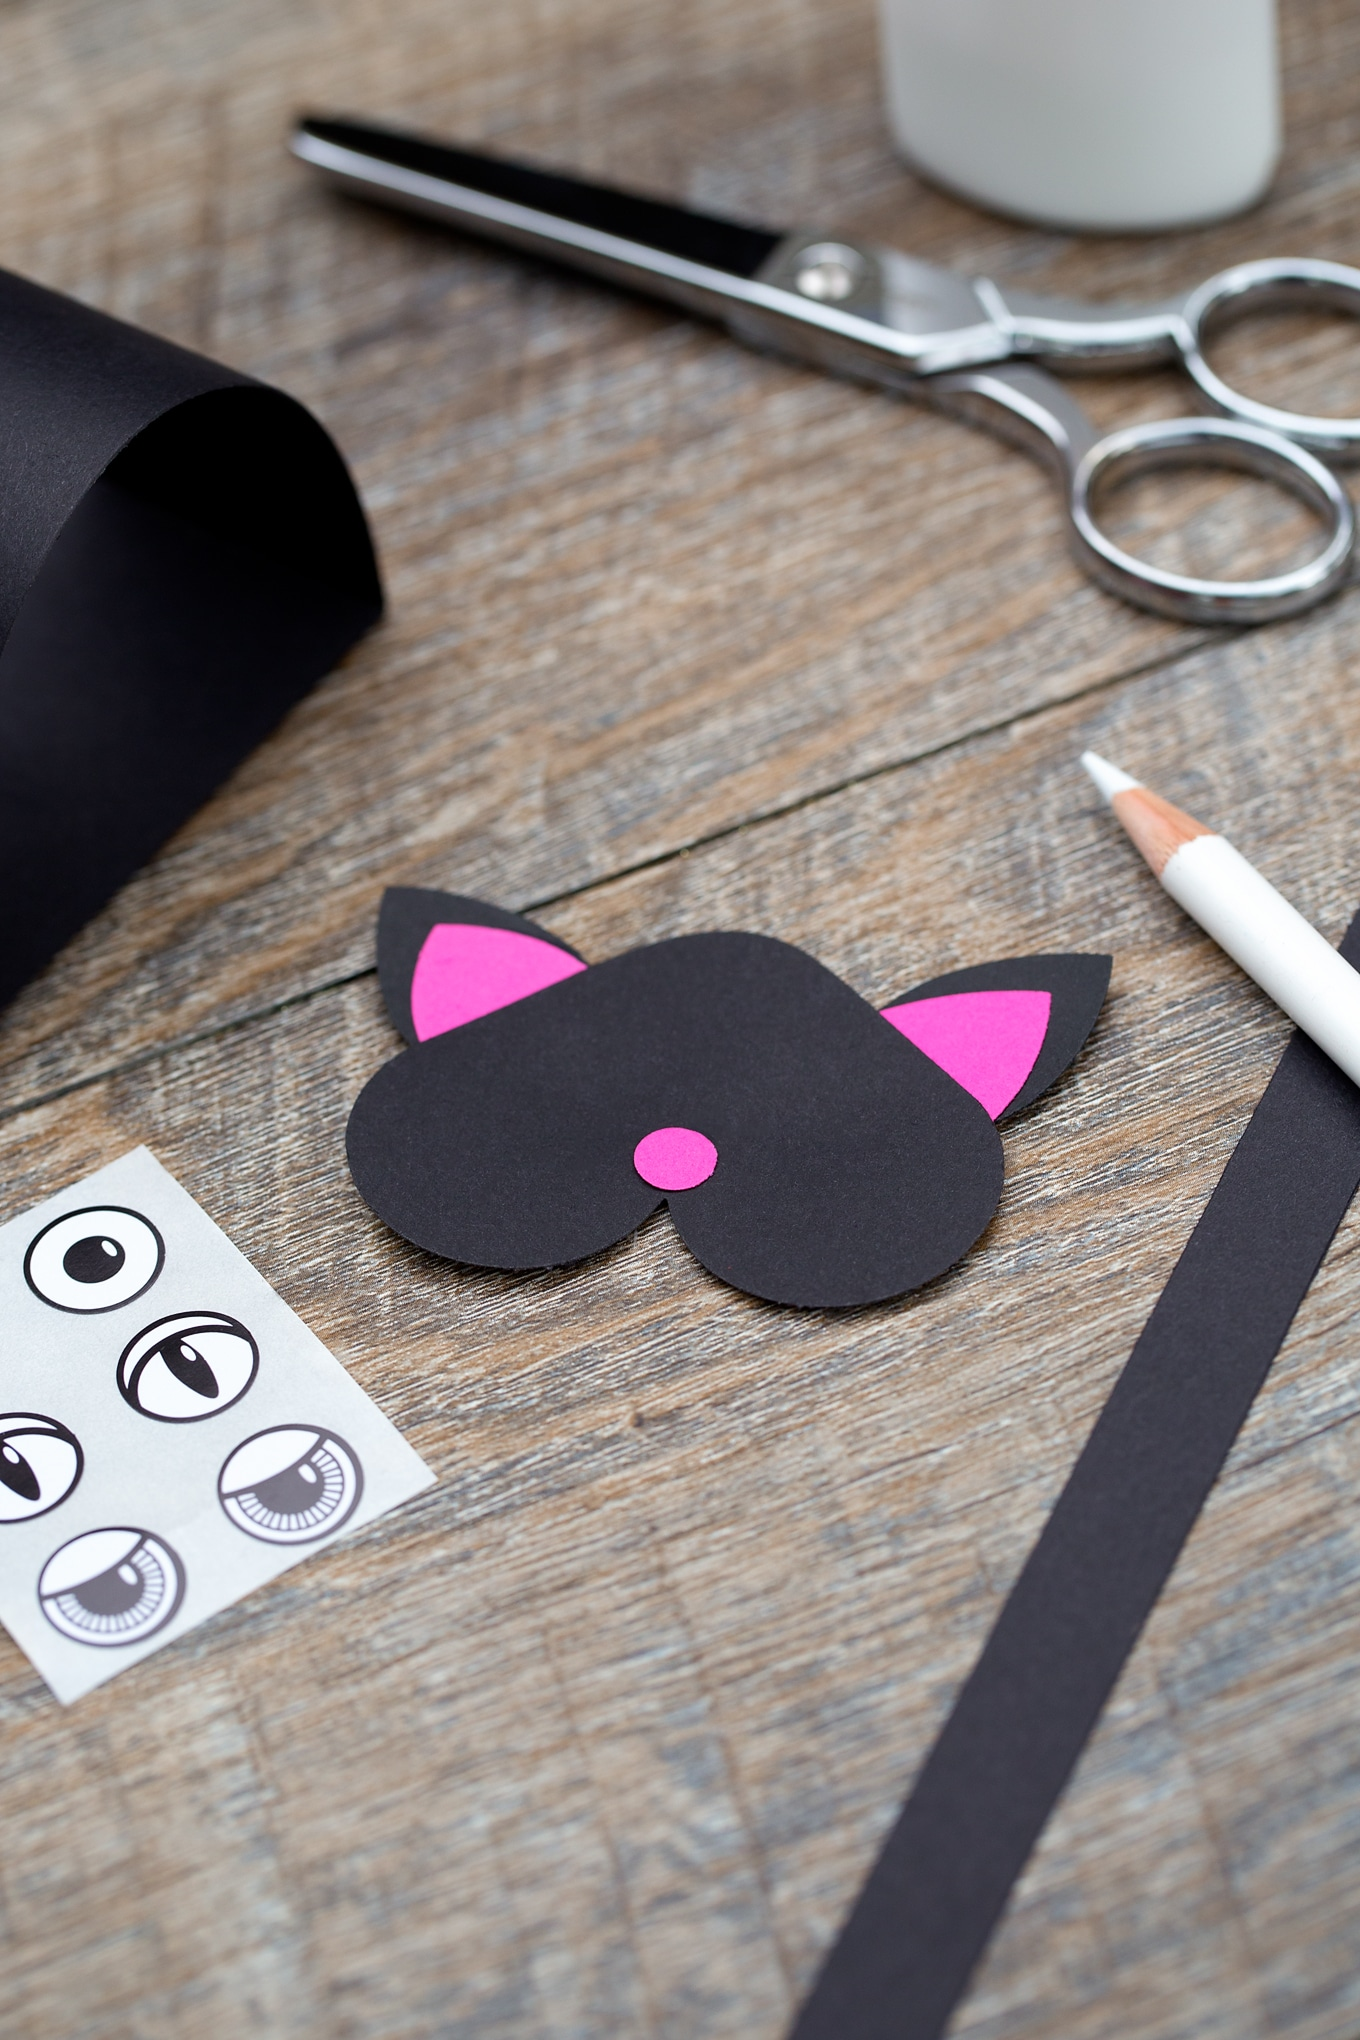 Black Cat Craft In-Process